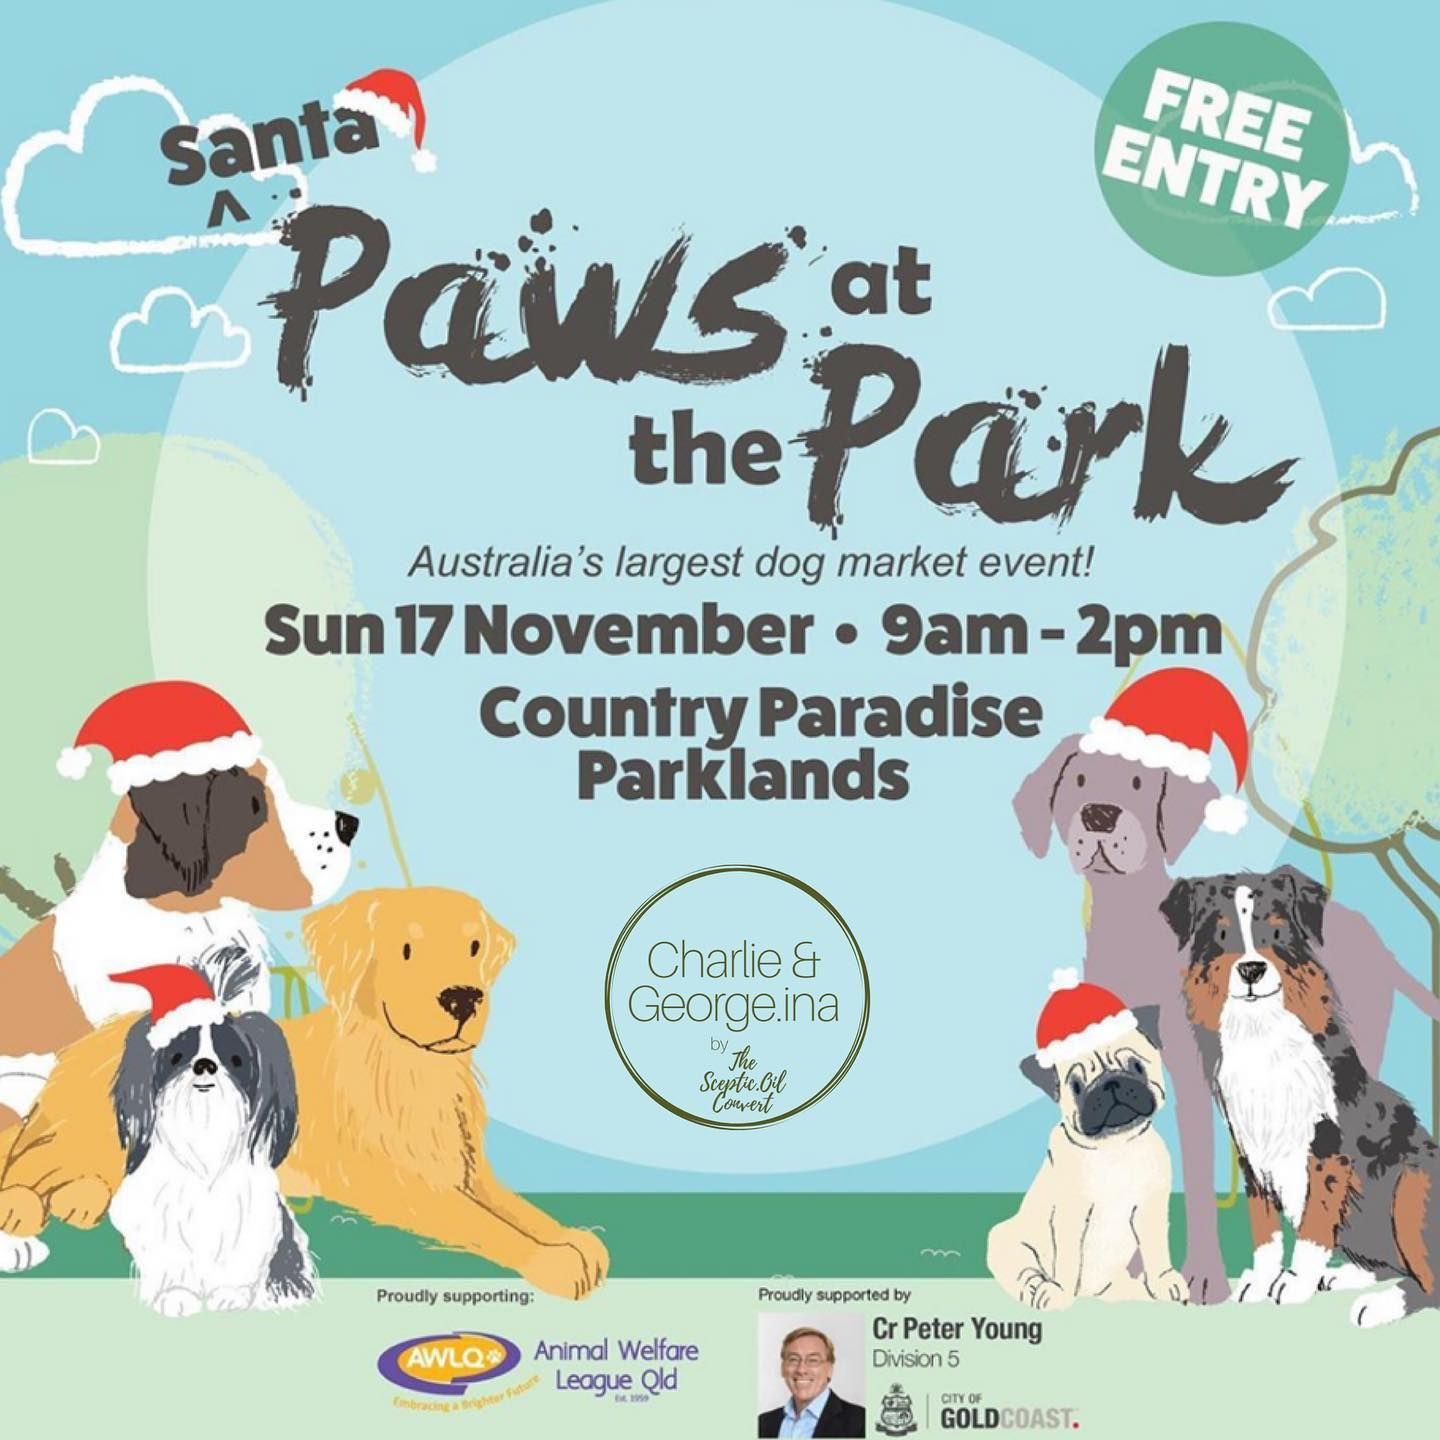 O N E W E E K To Go Can T Wait To See You All Pawsatthepark Next Sunday So Many Amazing Stalls Incl In 2020 Dog Marketing Animal Welfare League Santa Paws